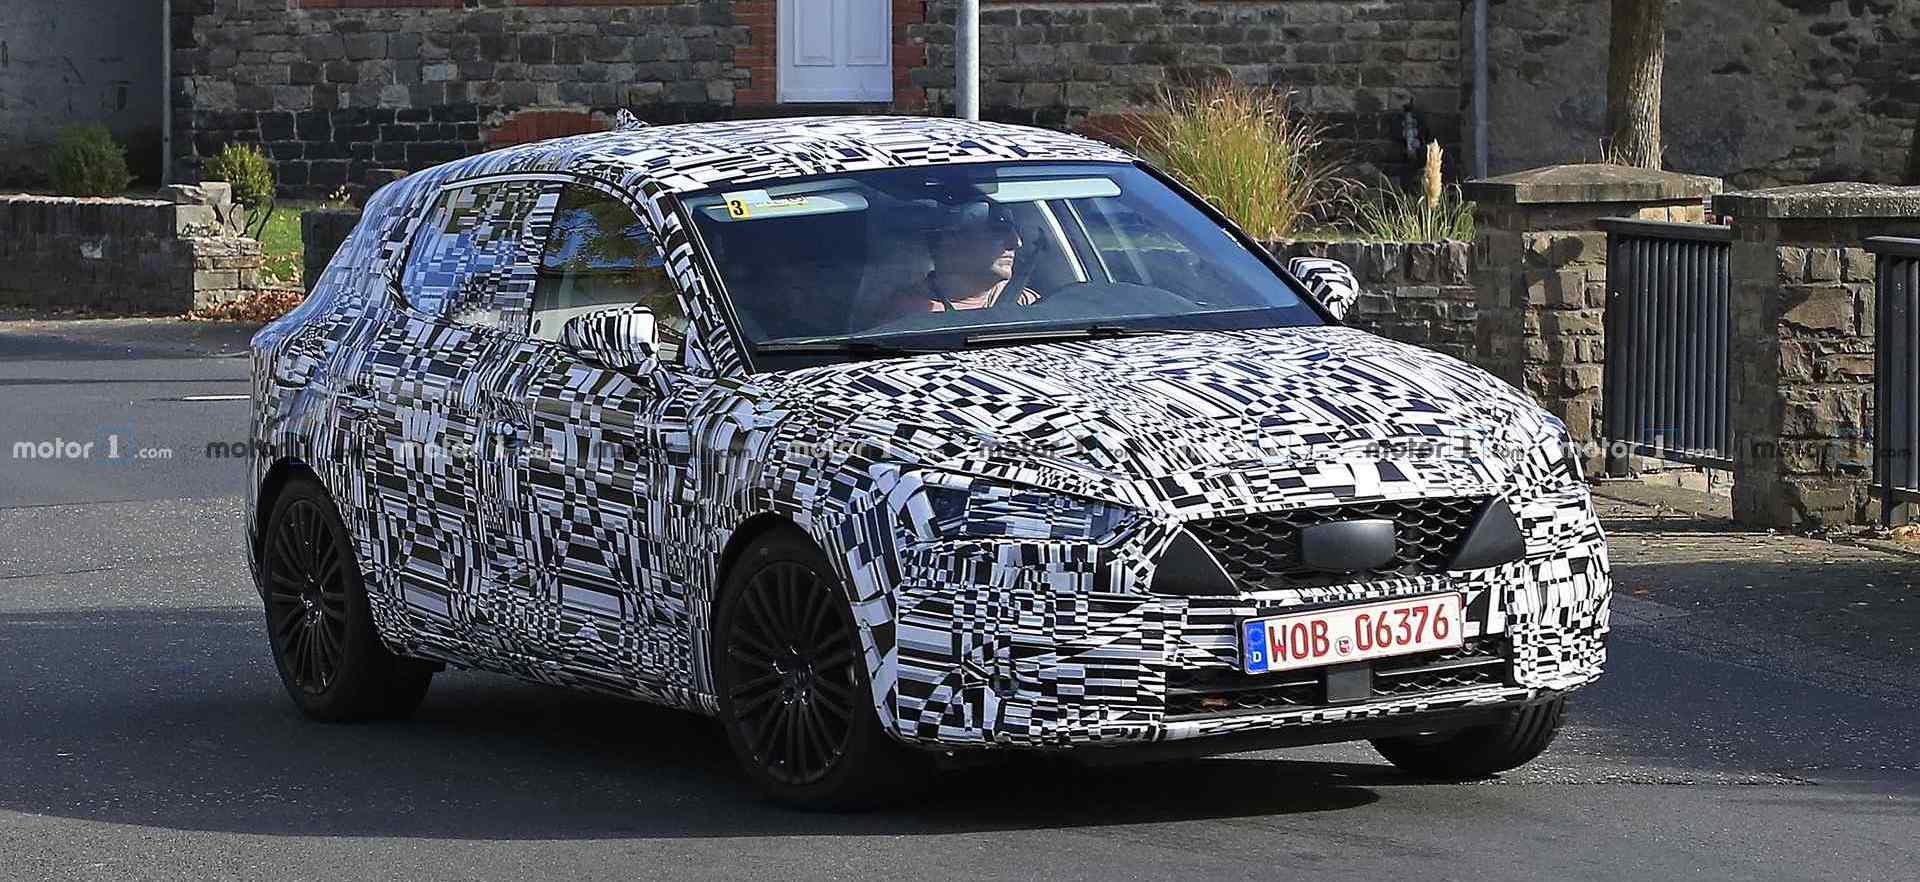 New SEAT Leon Spied With Production Body And Lights